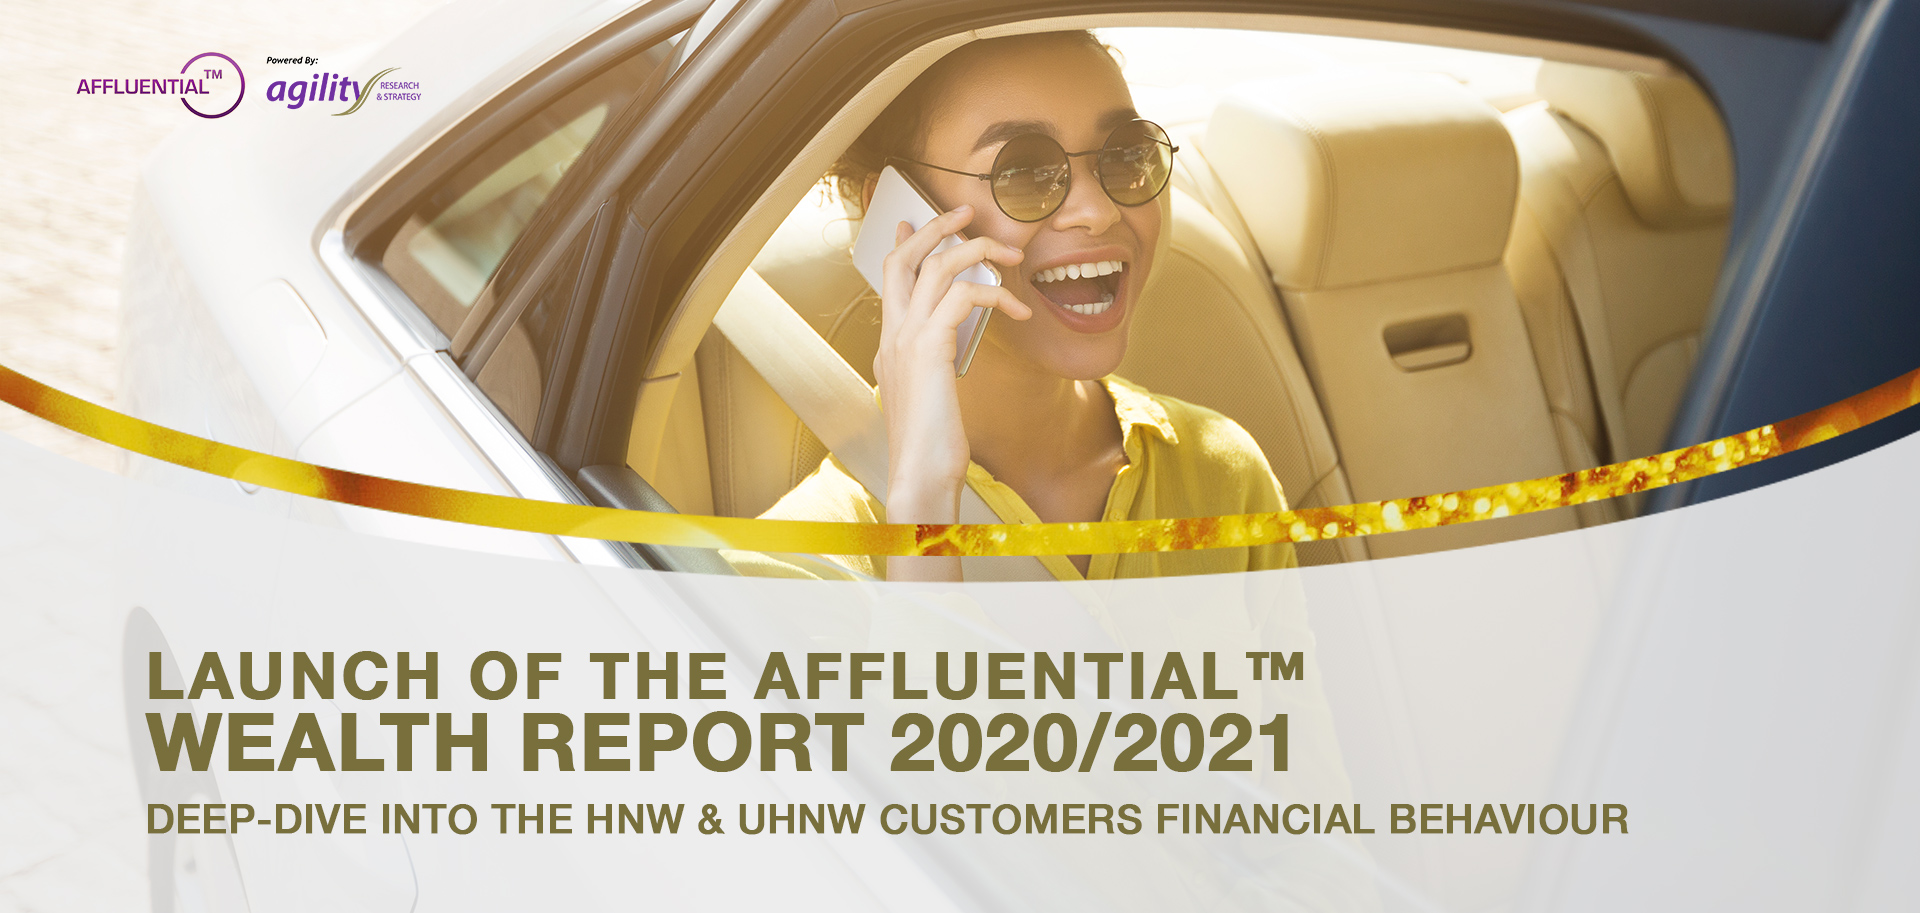 Deep-Dive into the HNW & UHNW Customers Financial Behaviour – AFFLUENTIAL™ WEALTH REPORT 2020/2021